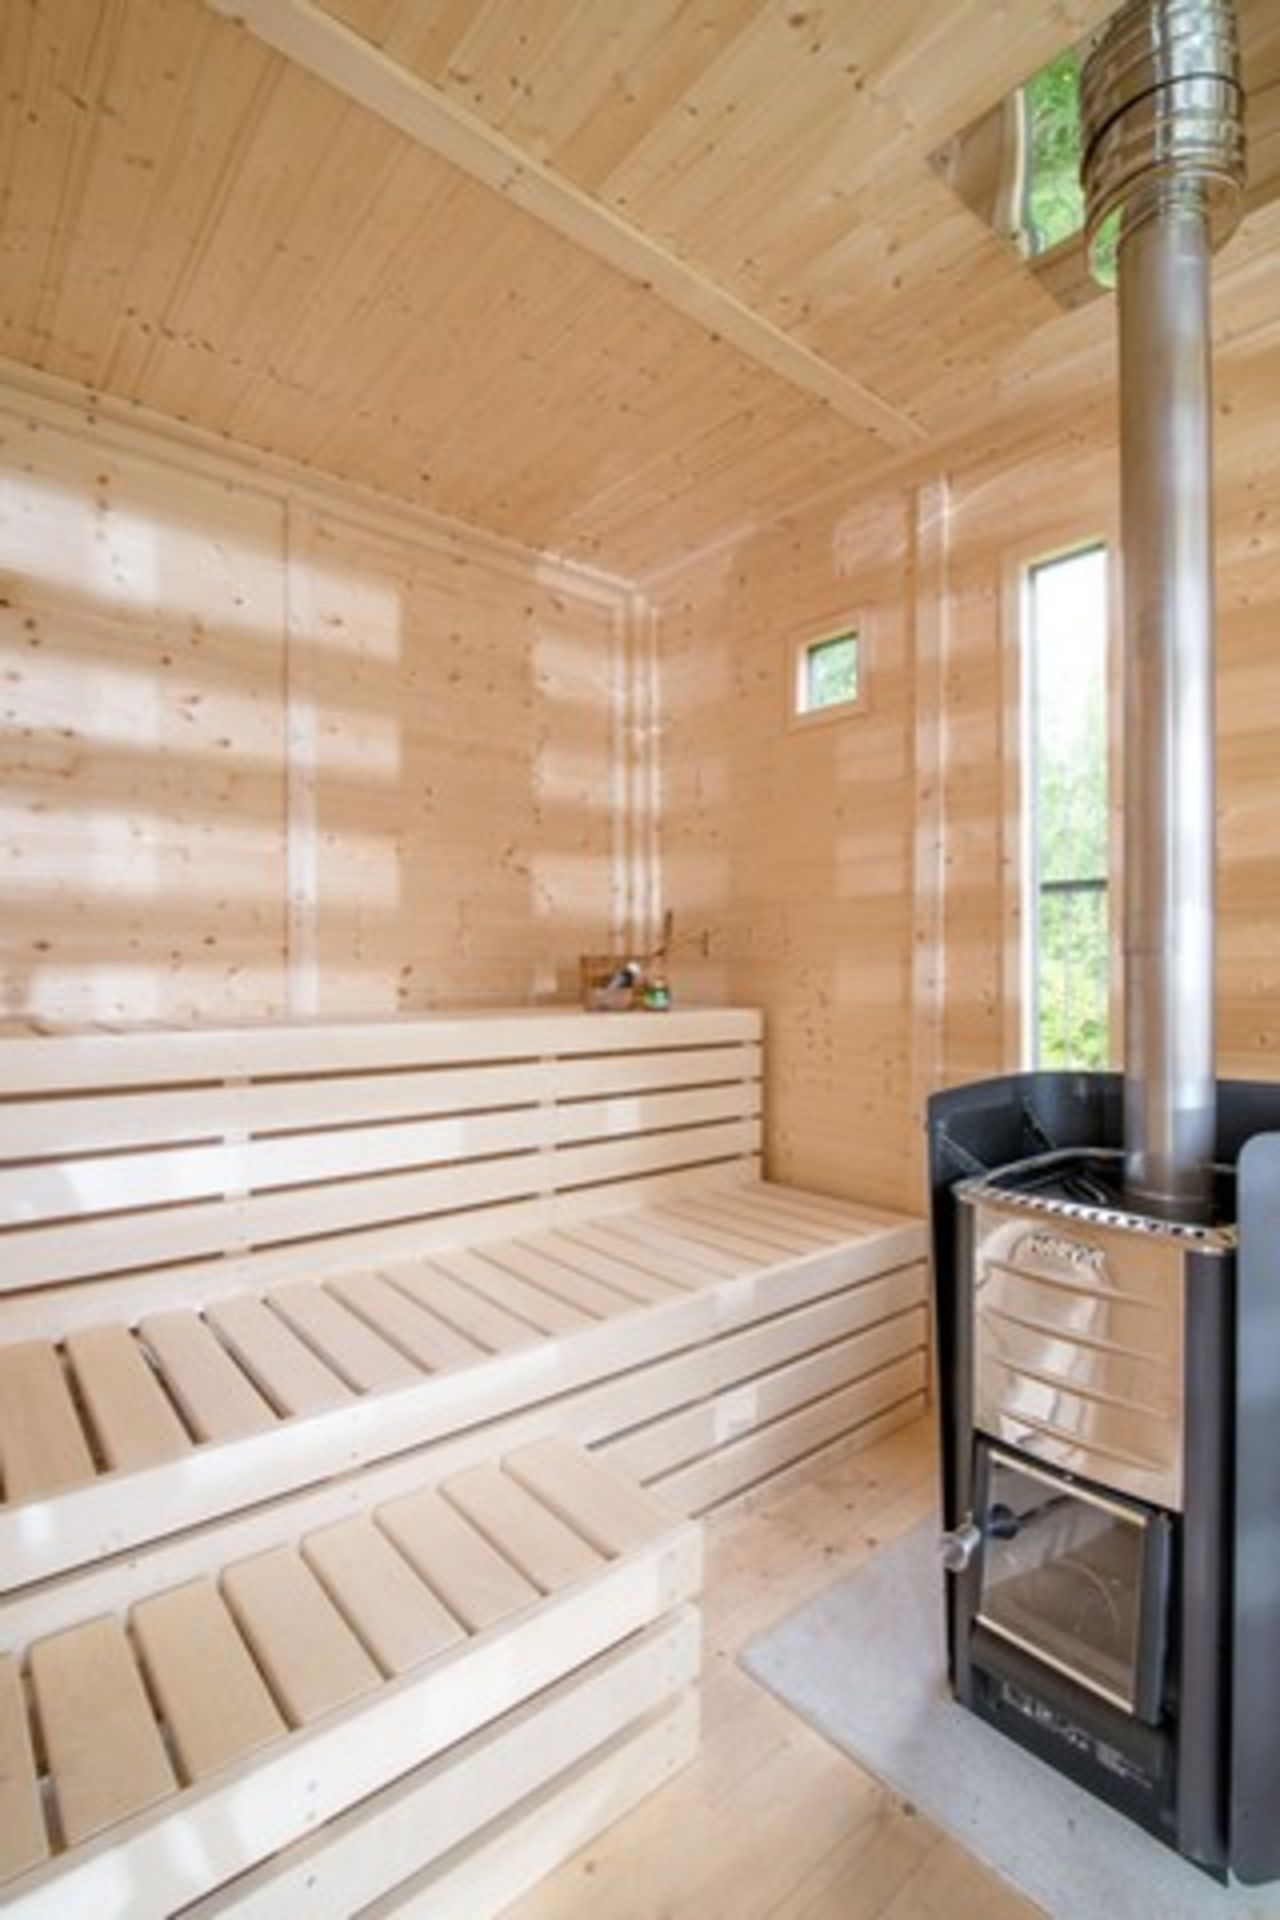 Lot 18039 - V Brand New 4 x 3m Sauna Cube - 3 Sunscreen Walls With Tempered Glass - 4 Insulated Wall Panels -